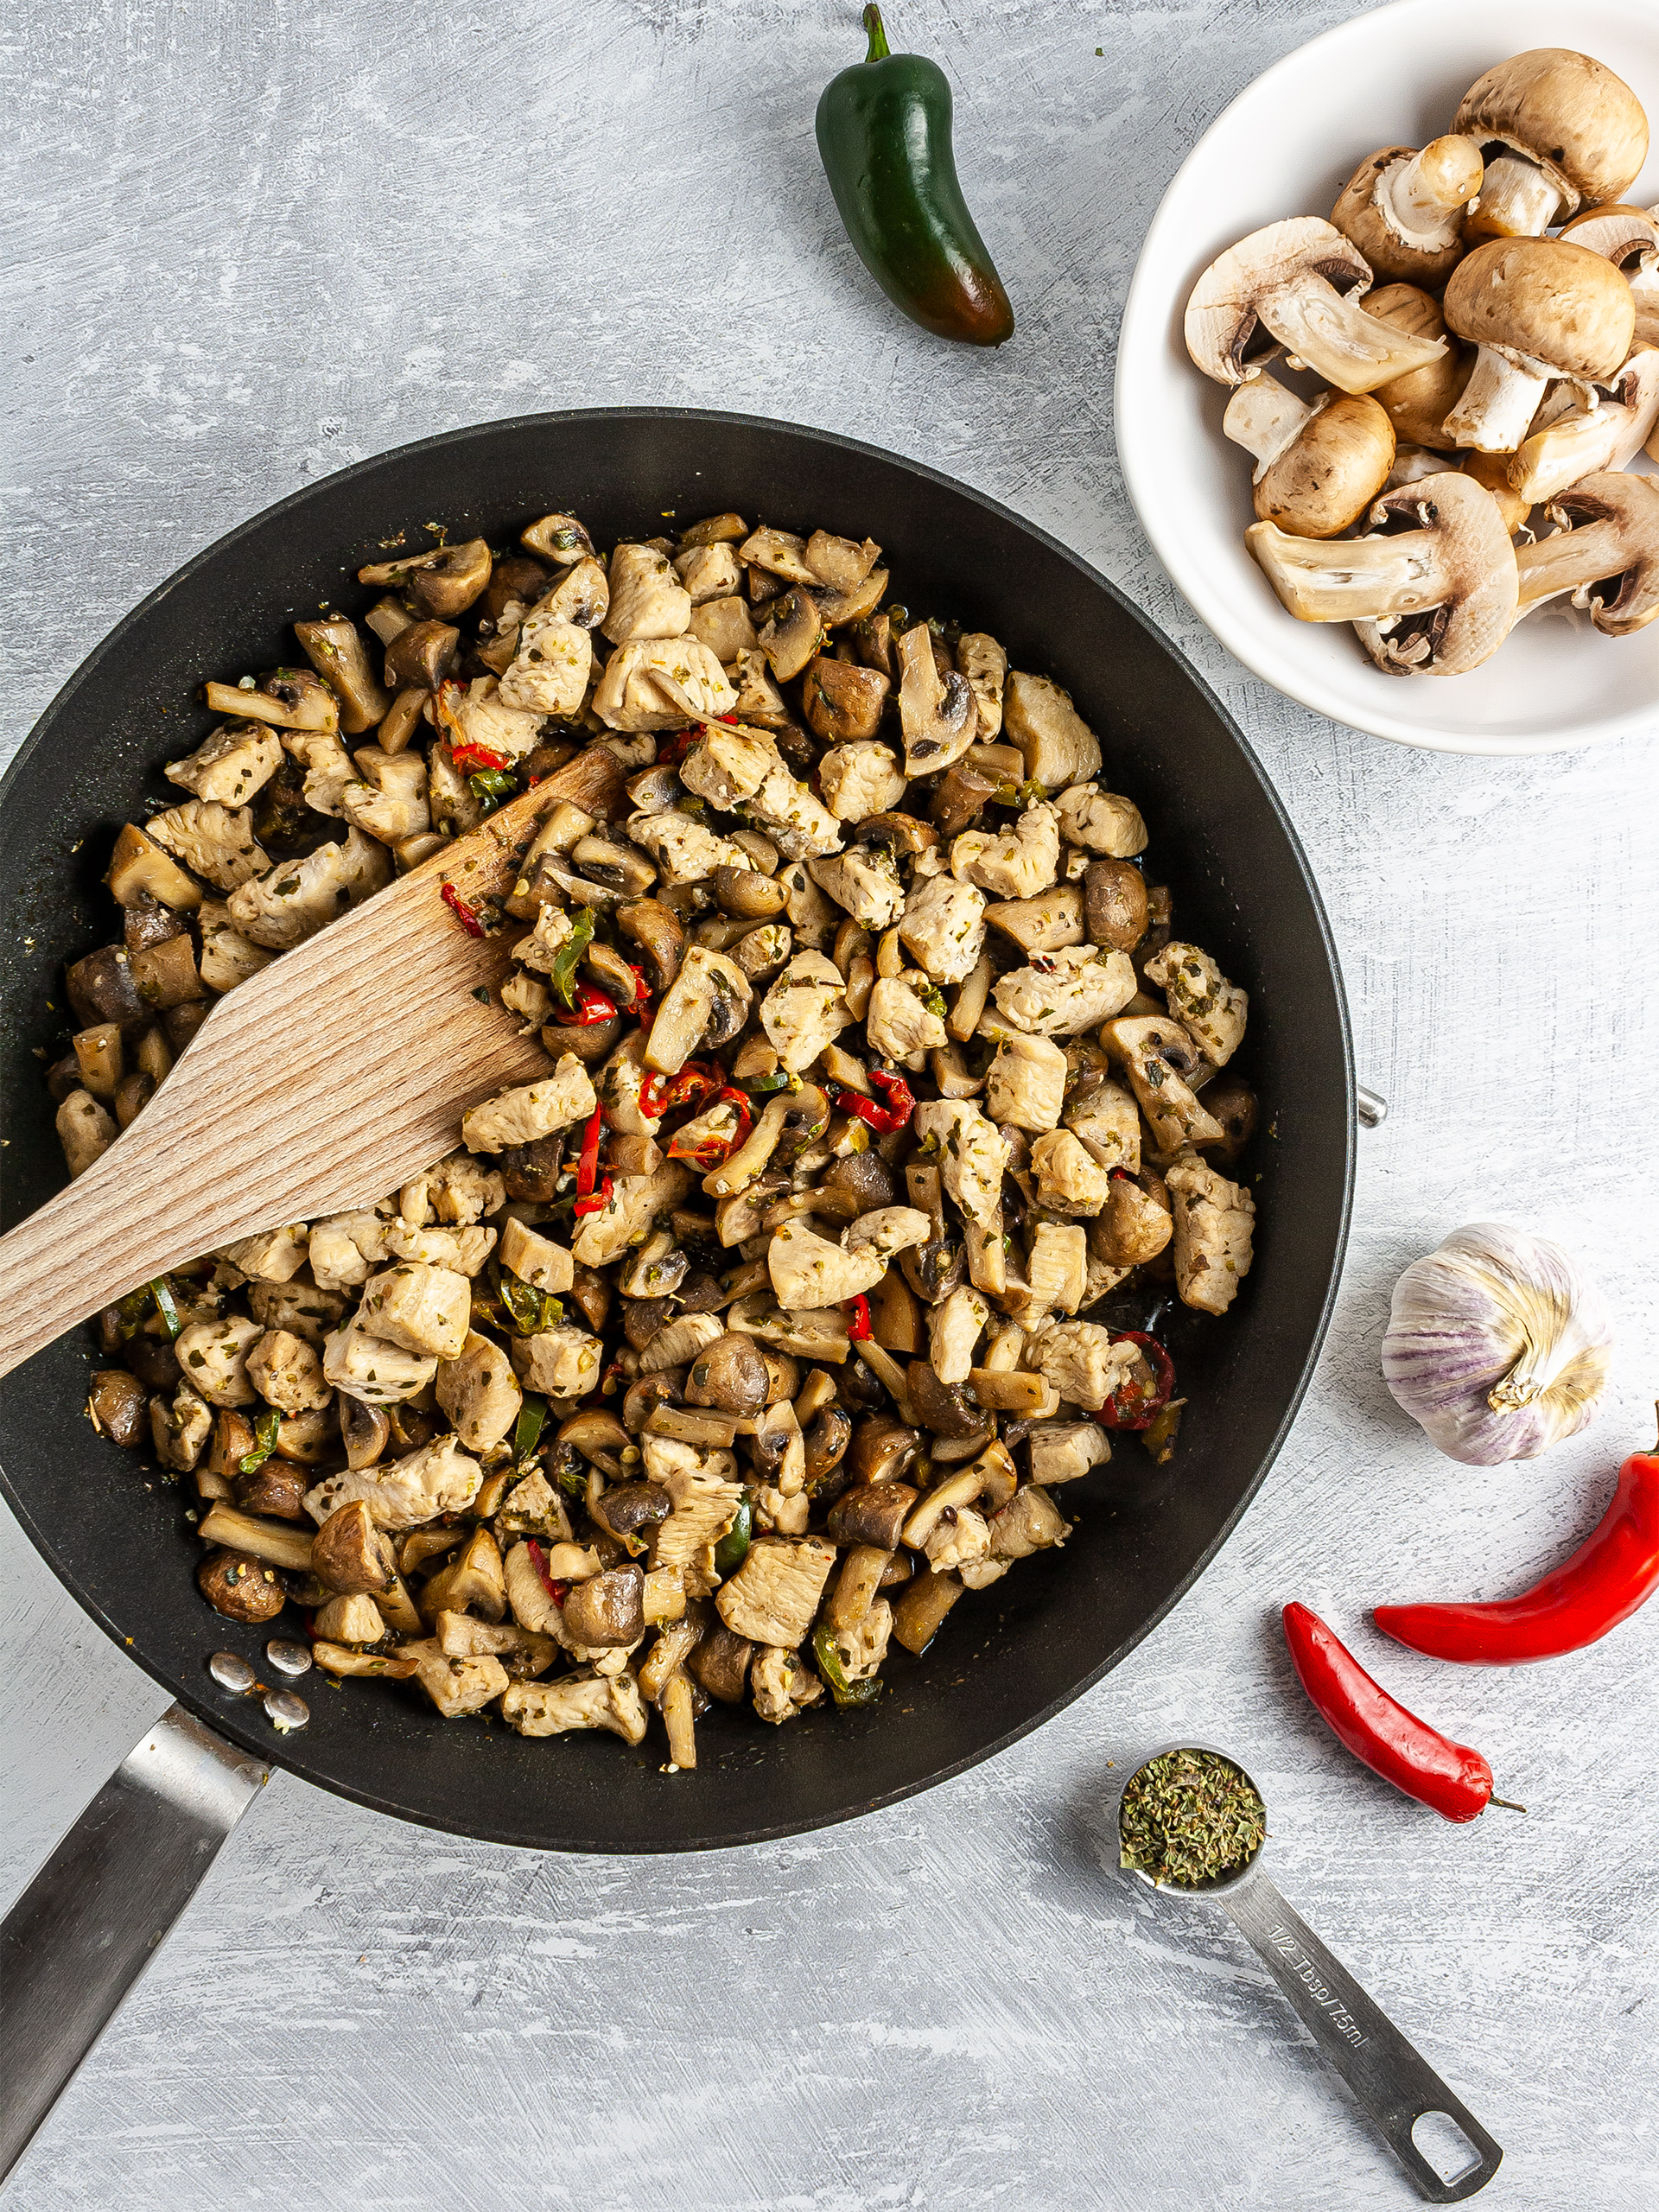 Cooked chicken and mushrooms with garlic and chillies